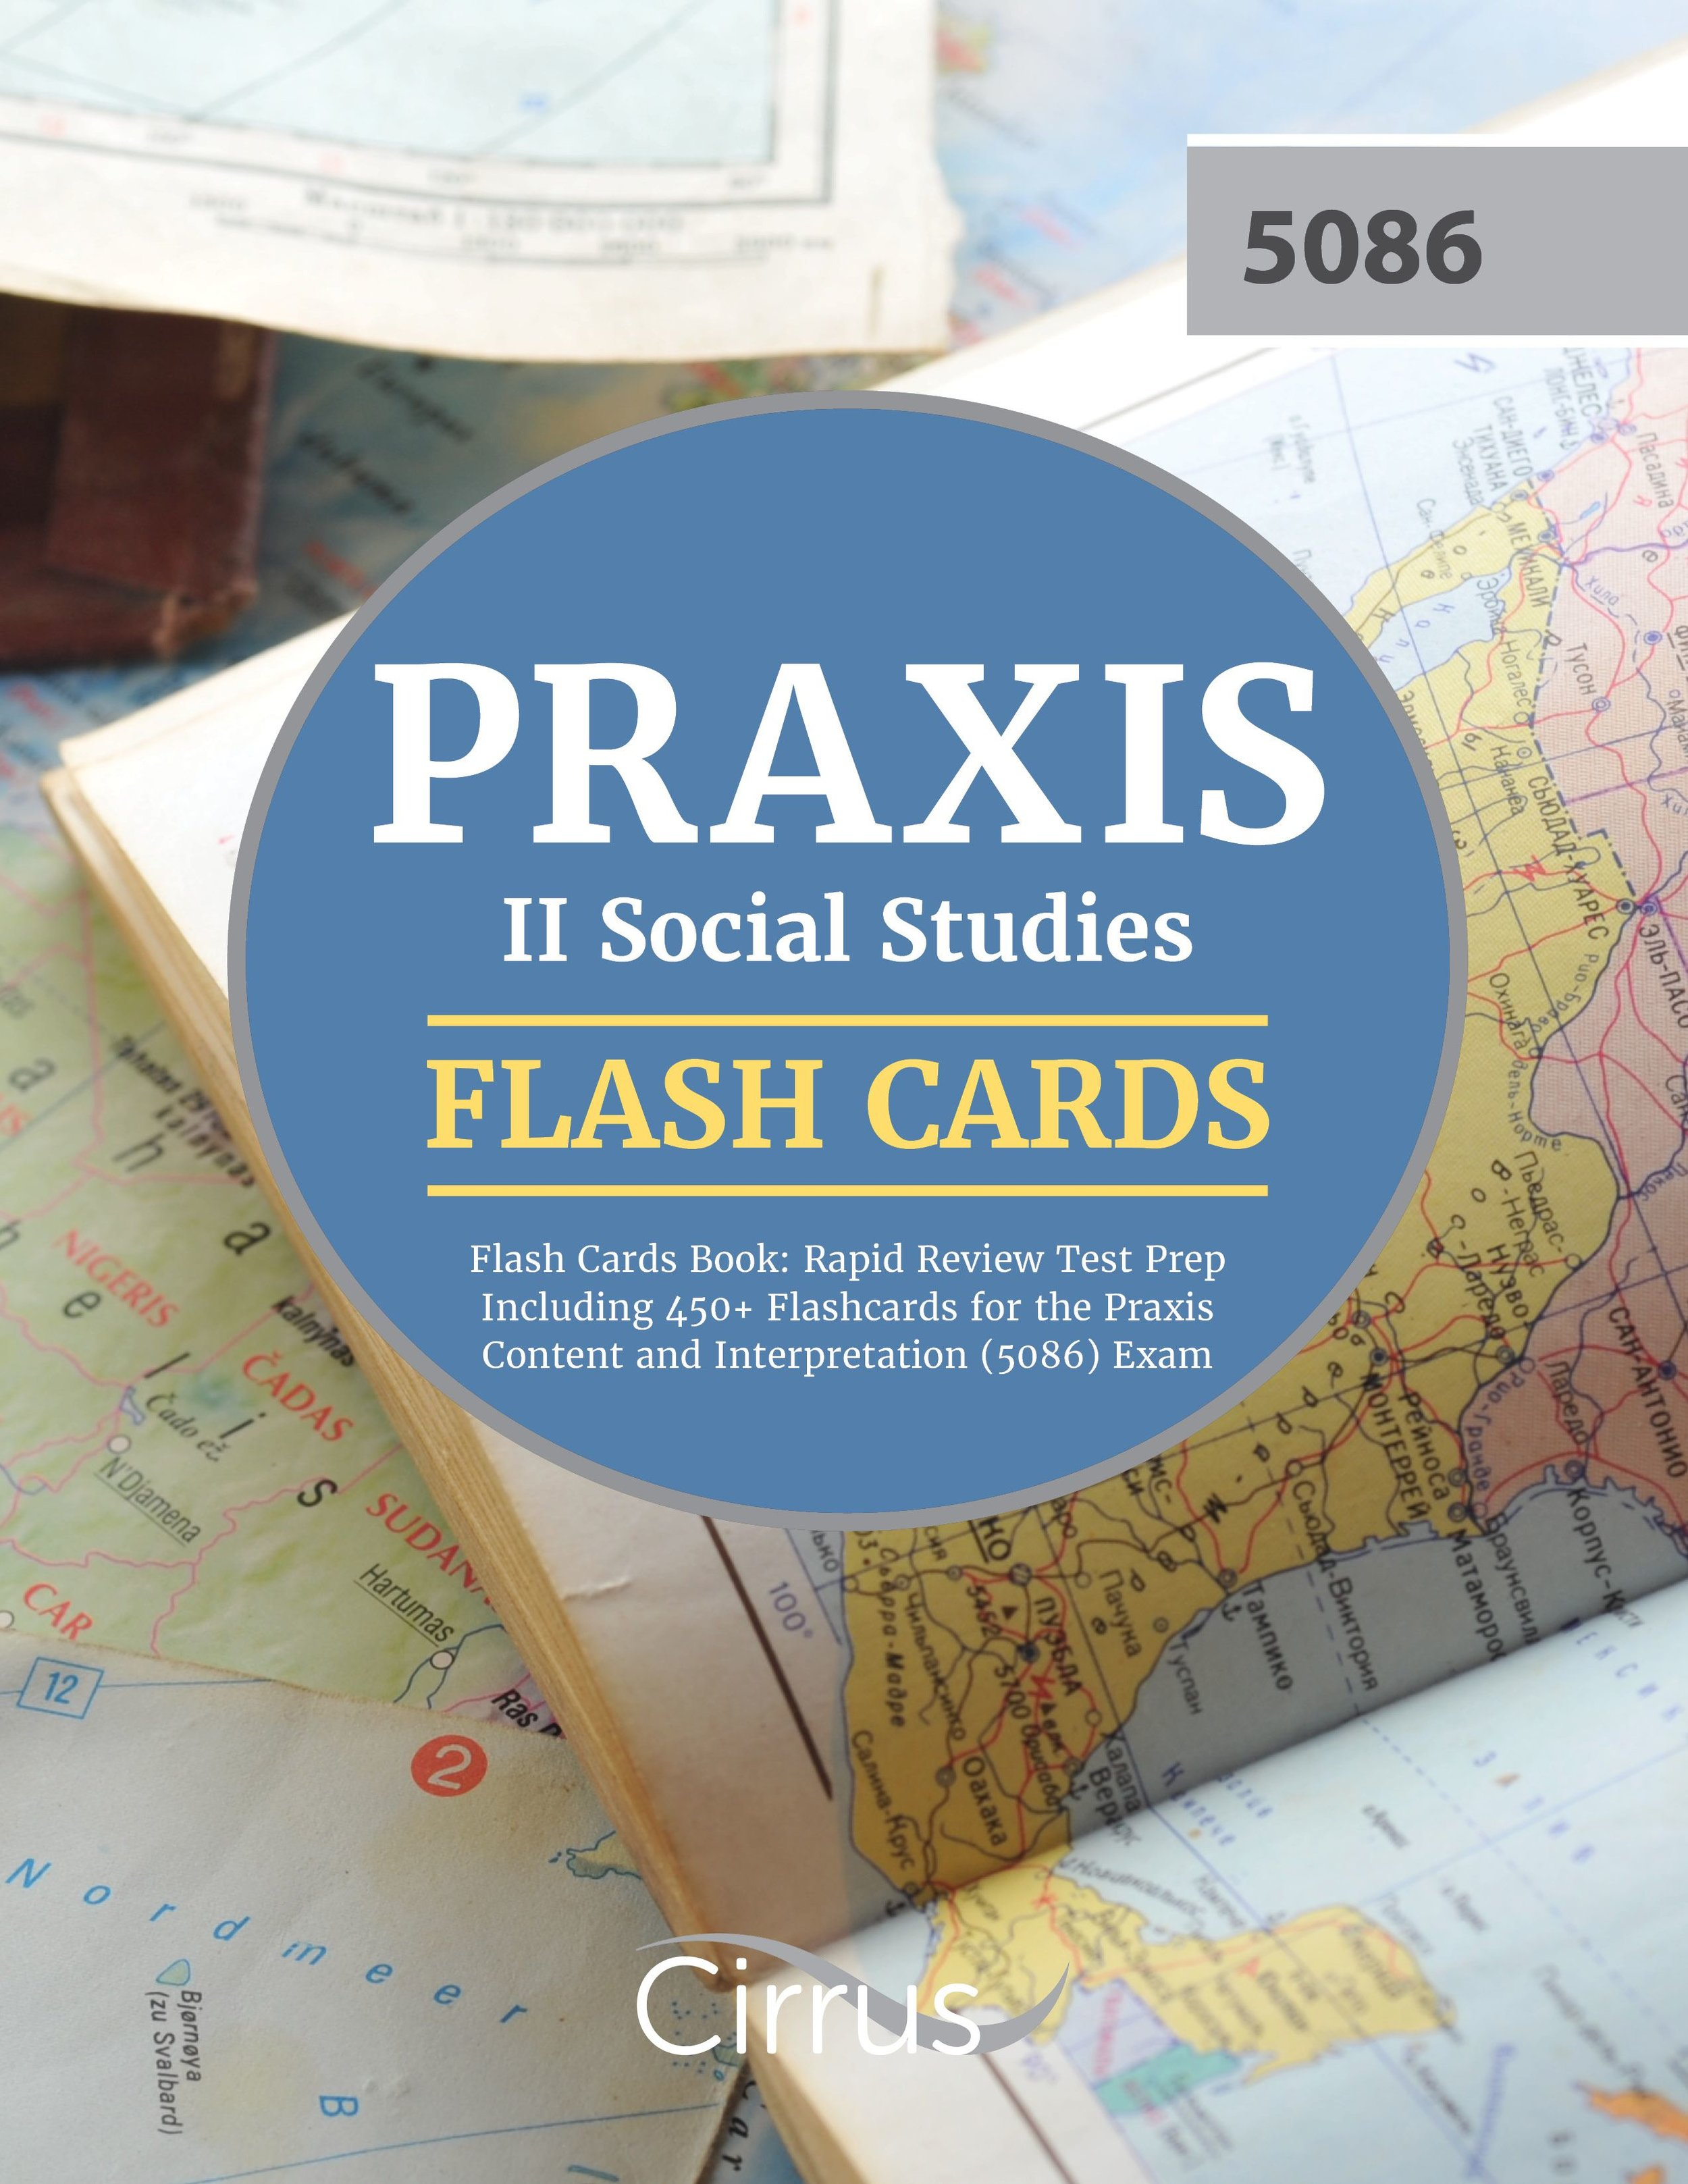 Praxis II Social Studies Flash Cards Book